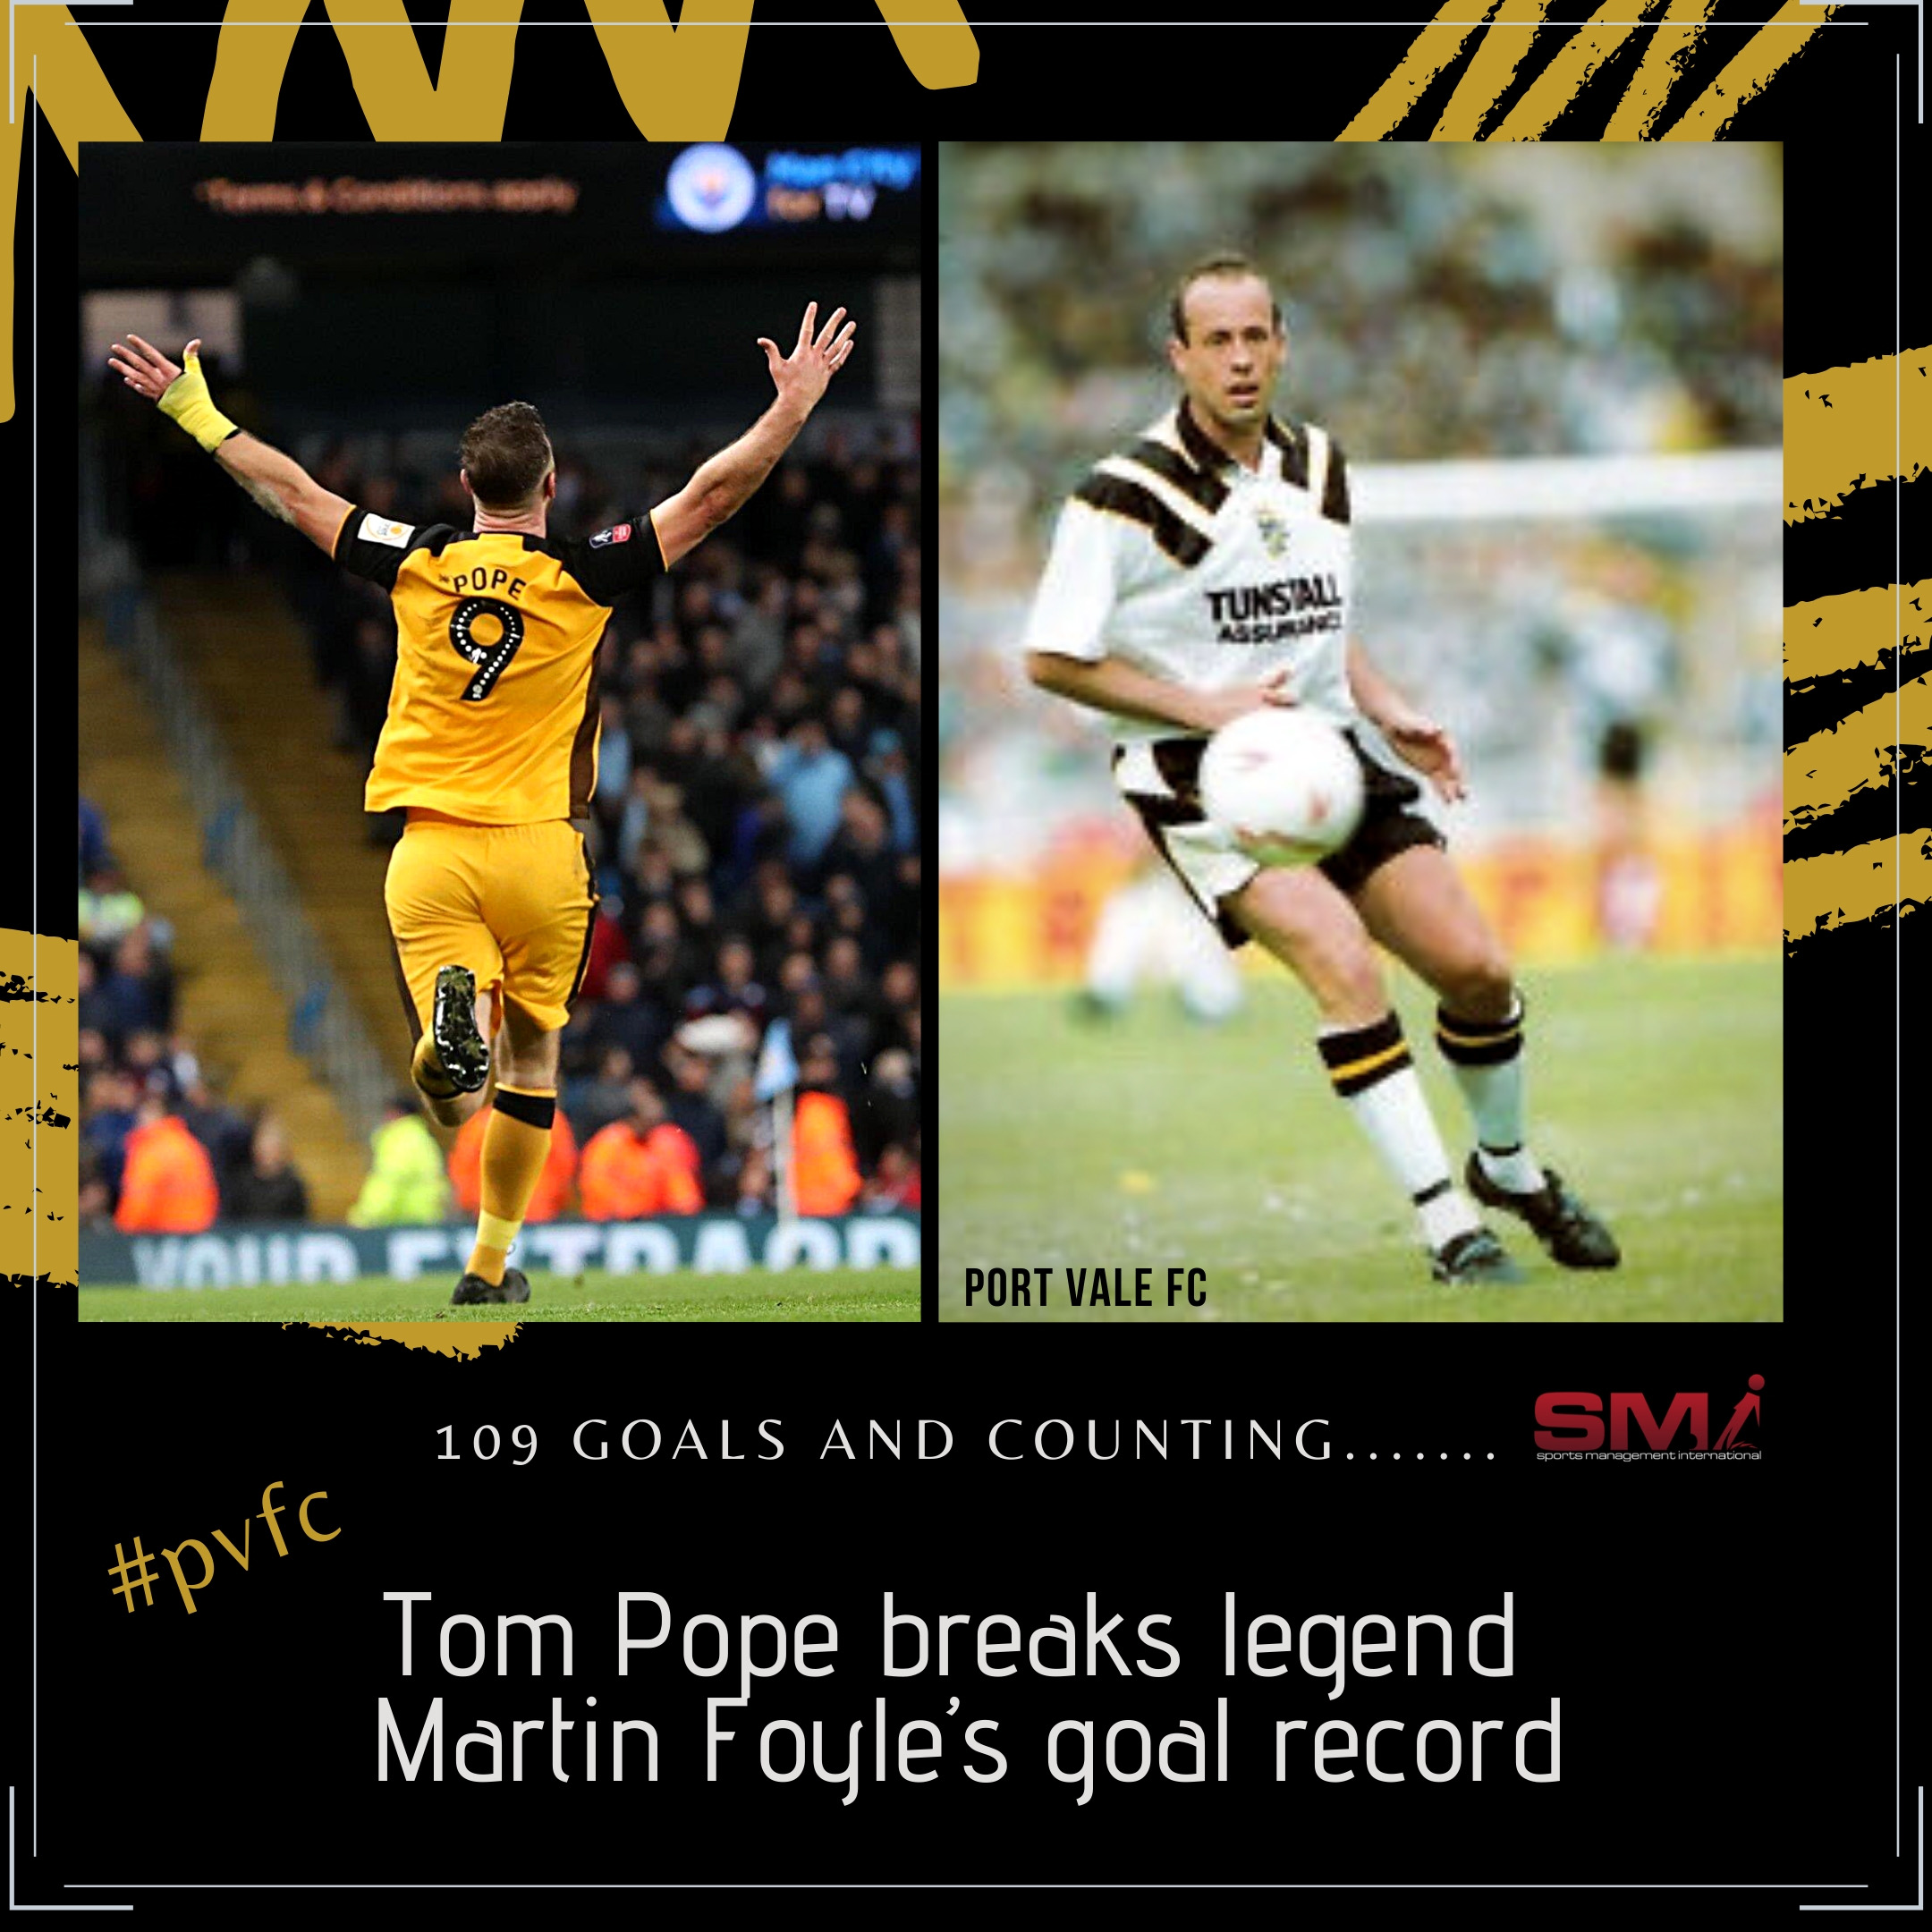 Tom Pope breaks PVFC goal record